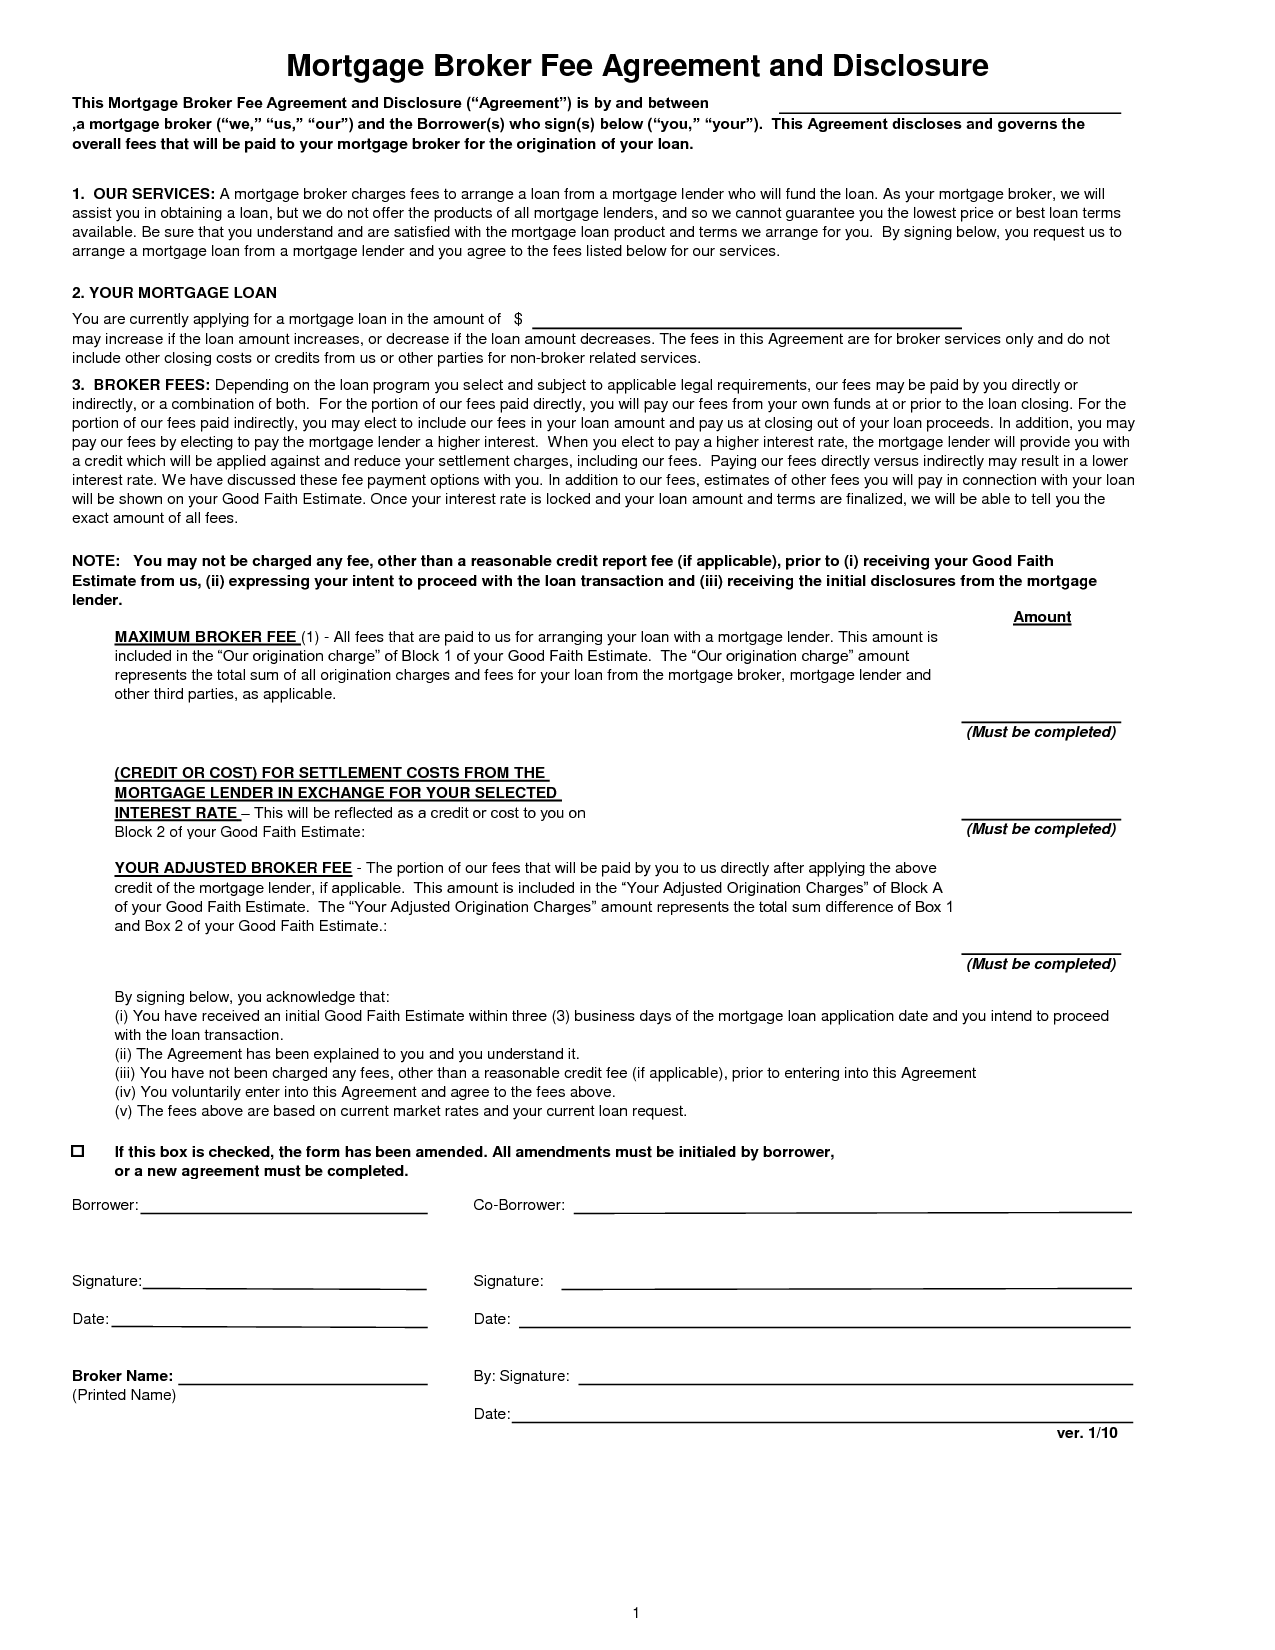 Mortgage Loan Agreement by dlp13834 private mortgage contract – Sample Mortgage Contract